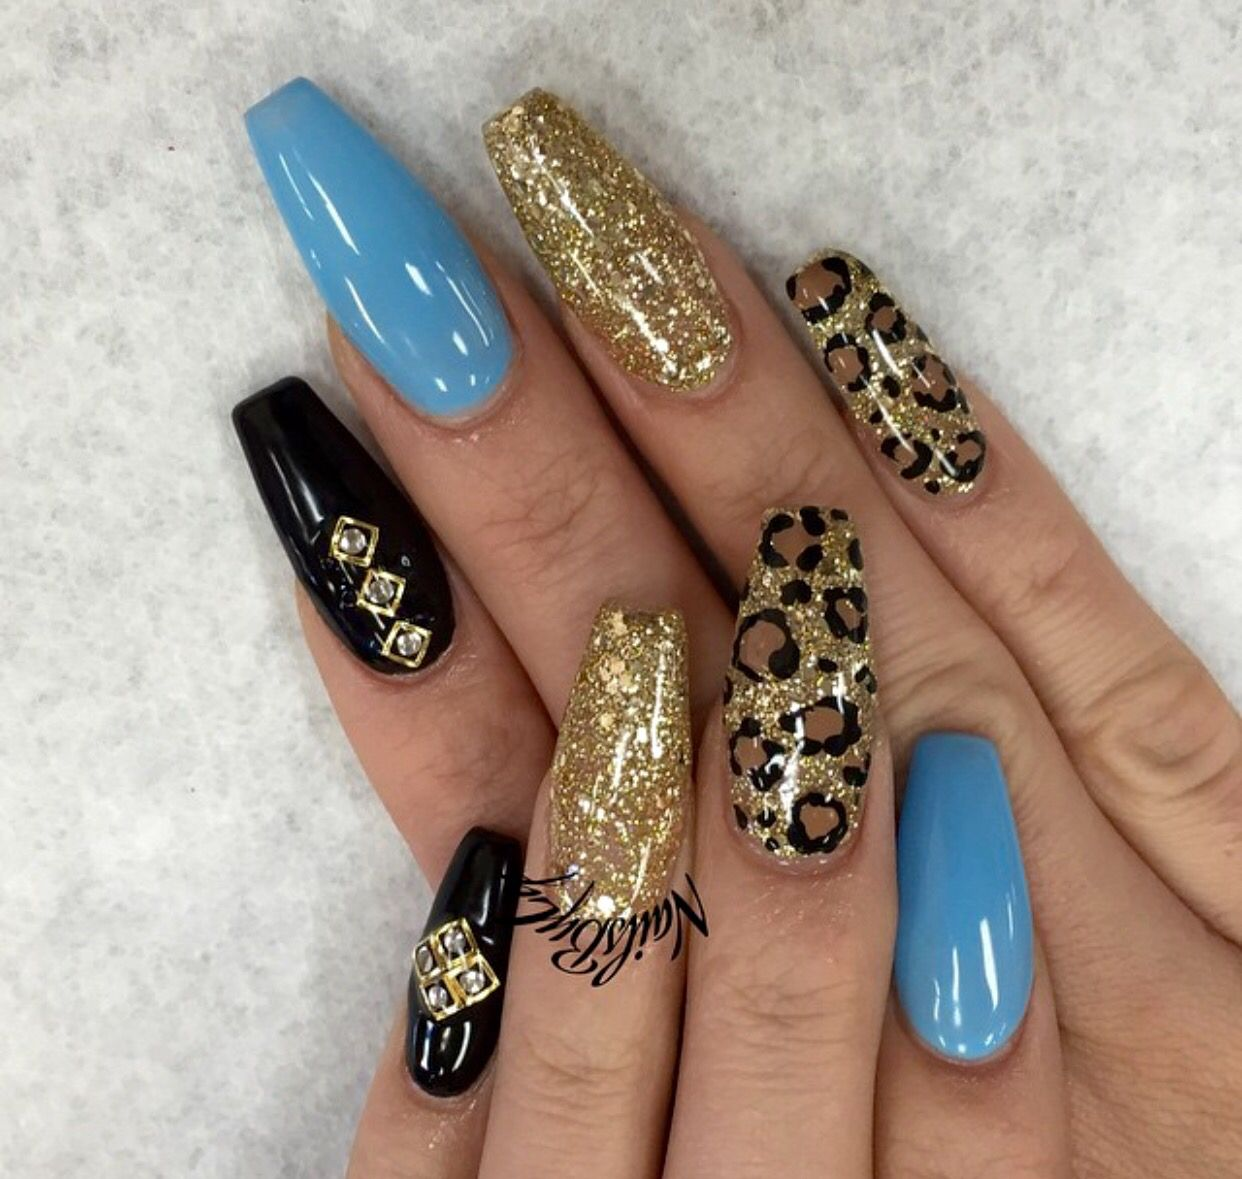 Cheetah print, blue and black coffin nails | Nails | Pinterest ...